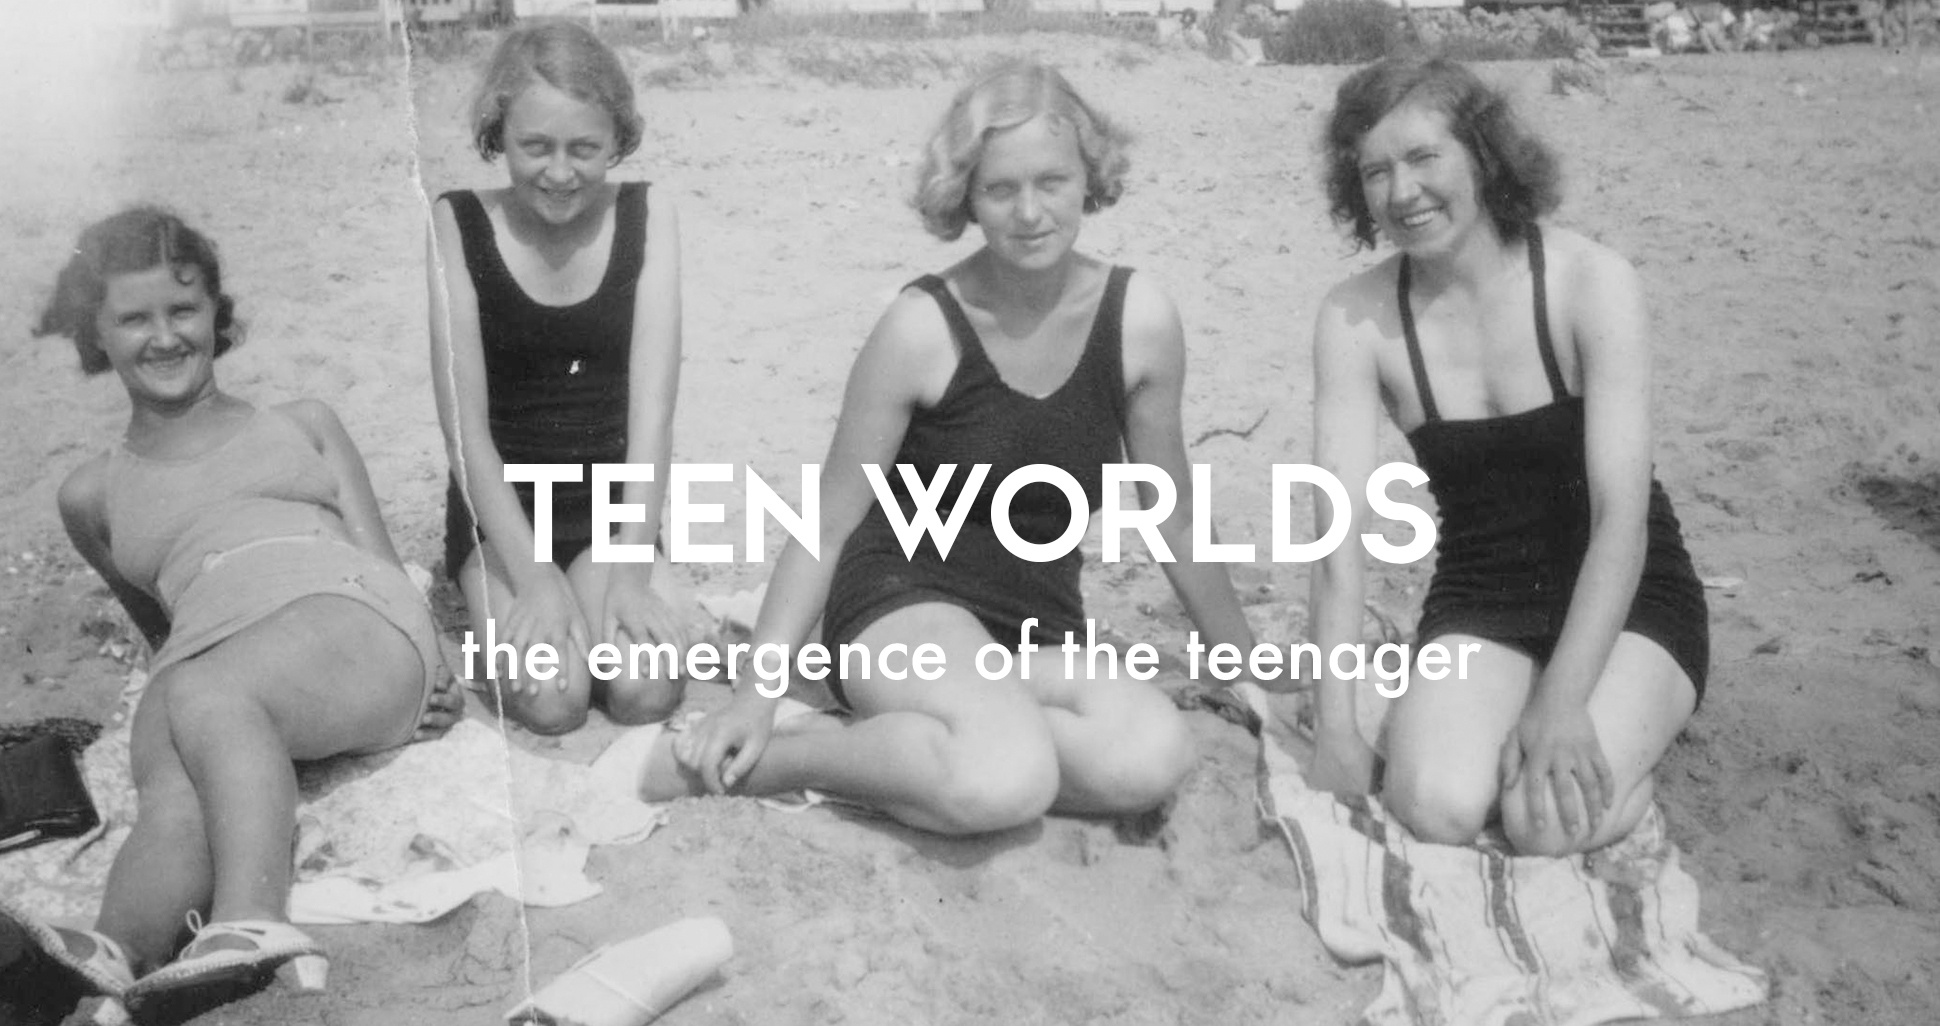 The history of British youth culture: Teen worlds, the emergence of the teenager